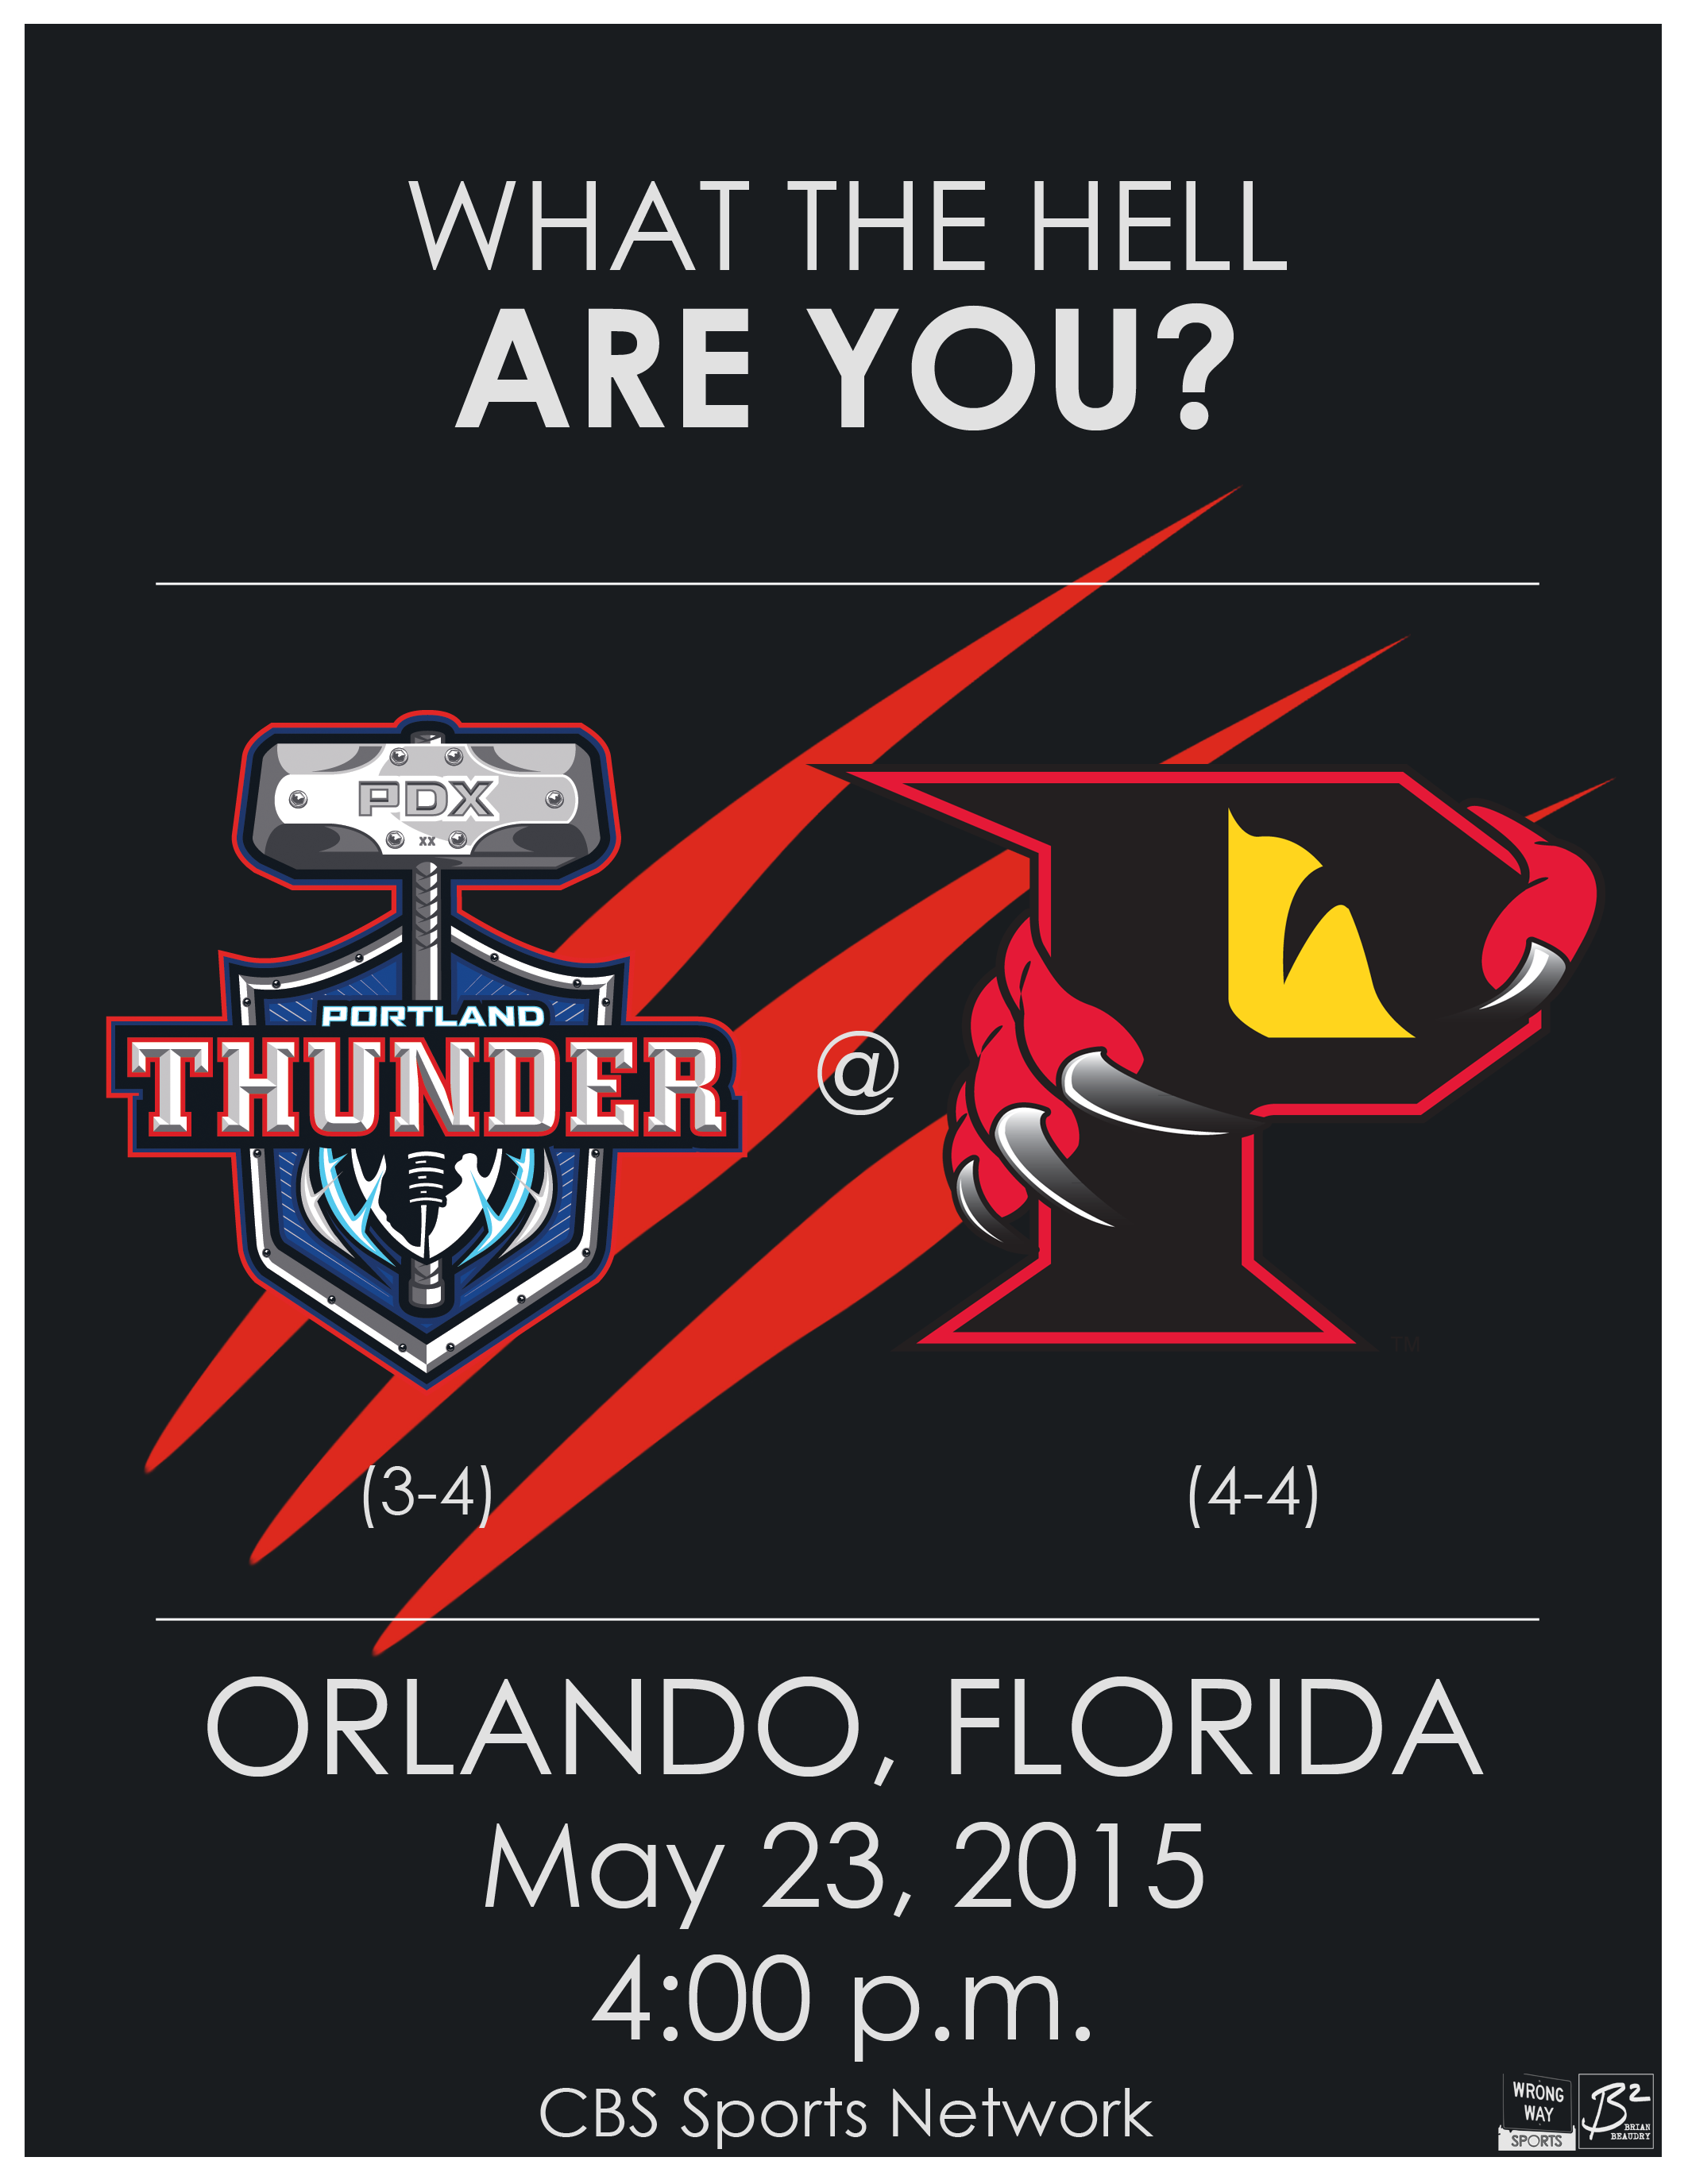 Tagline: What the hell are you? Portland Thunder (3-4) vs. Orlando Predators (4-4) in Orlando, Florida on May 23, 2015 at 4 p.m. Game will be televised on CBS Sports Network.